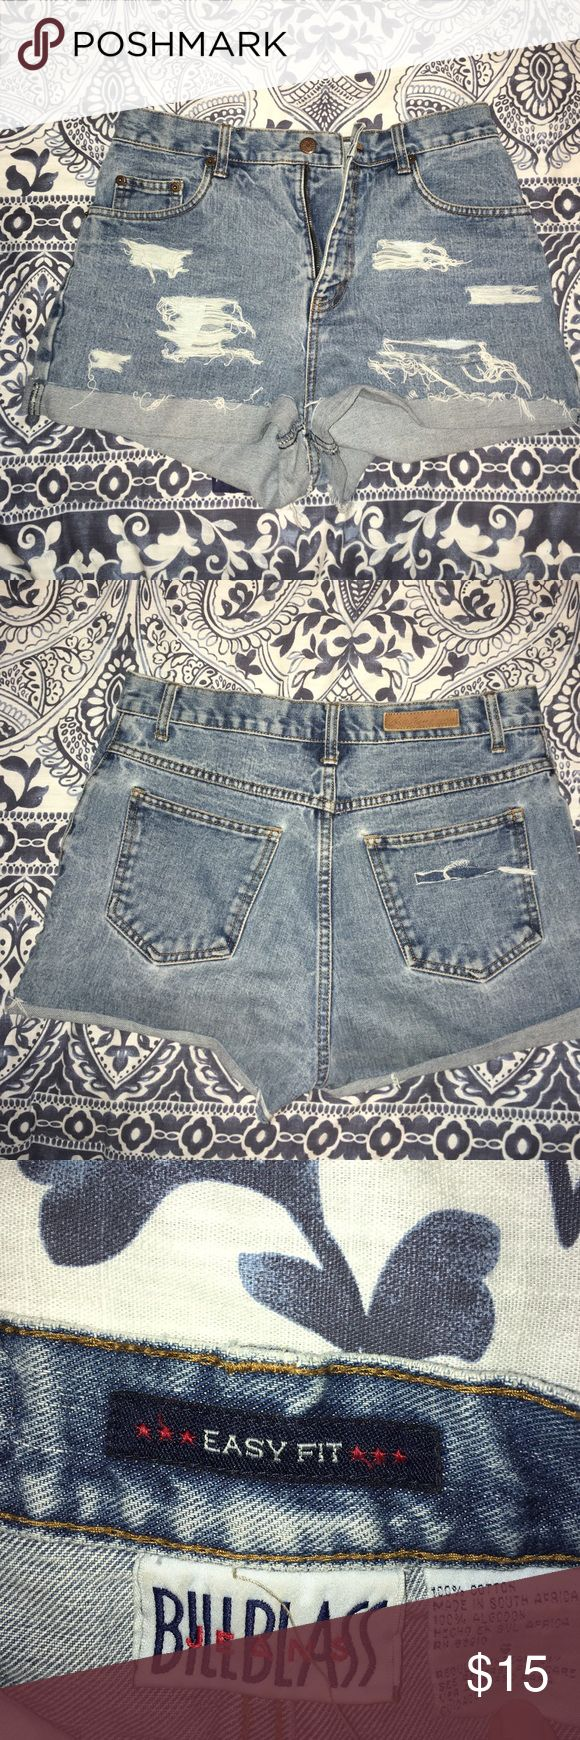 Homemade Distressed Shorts These are a size 6 distressed short. I made them myself from an old pair of jeans. They're ripped up and cuffed on the bottoms but you can in cuff them if desired! Super cute for summer and spring Shorts Jean Shorts